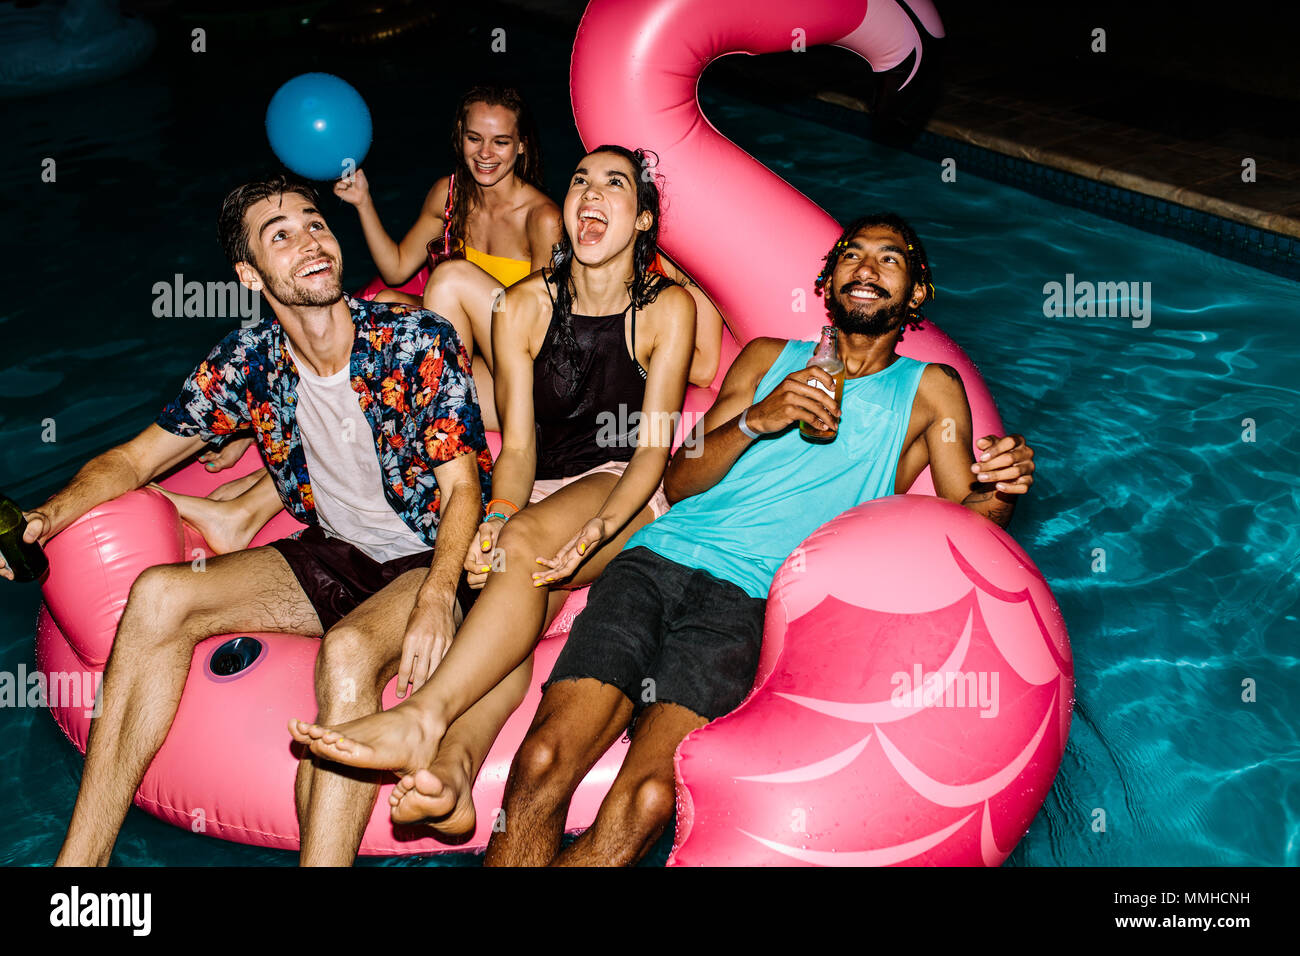 Multiracial group of friends having party in a swimming pool. Happy young people chilling on air mattress in pool. Stock Photo